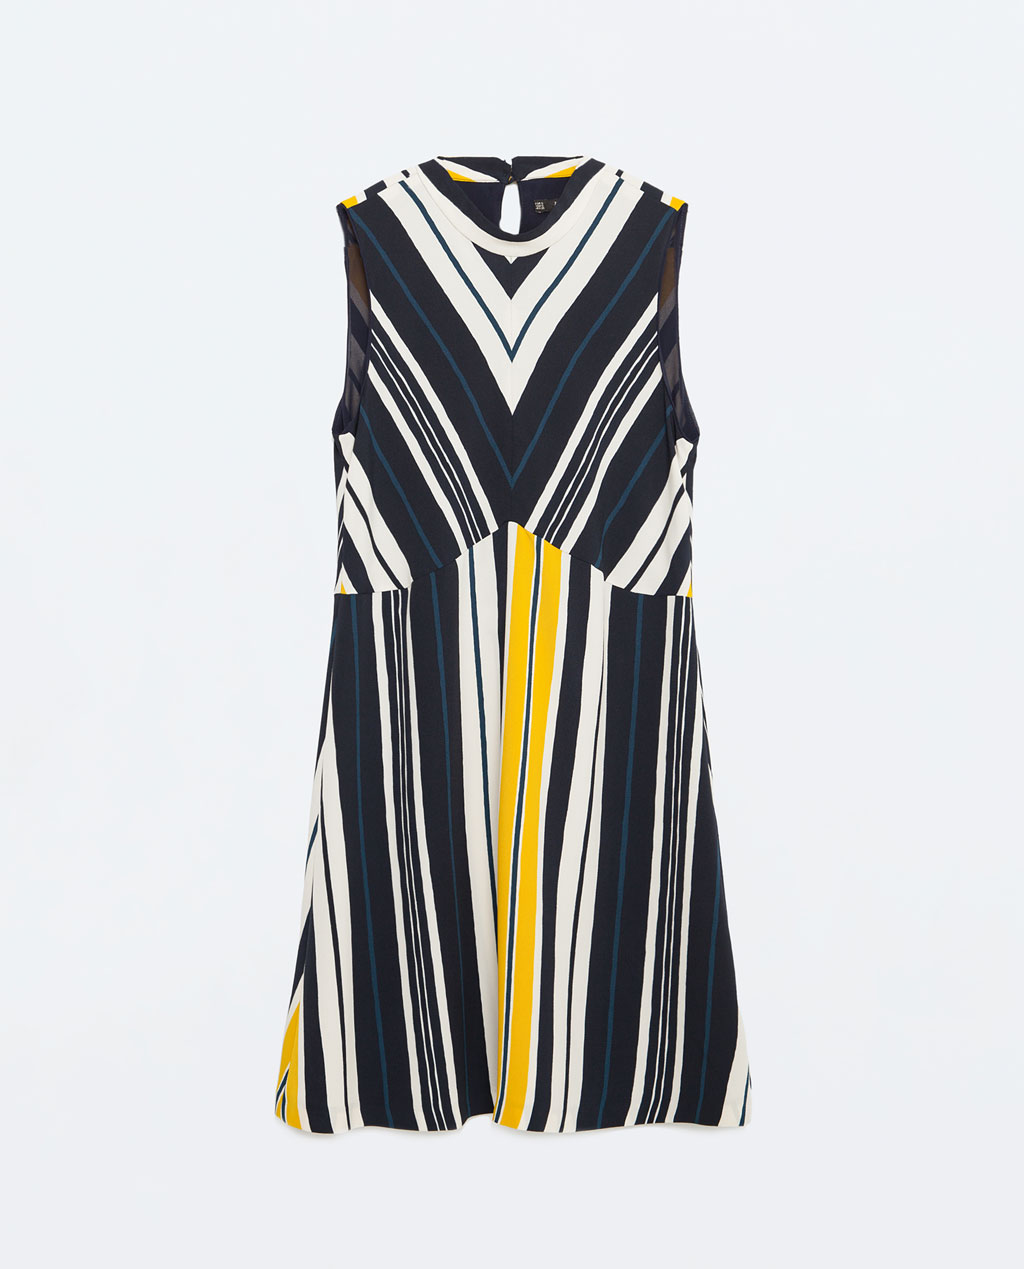 Zara - A-LINE STRIPED DRESS 29.99